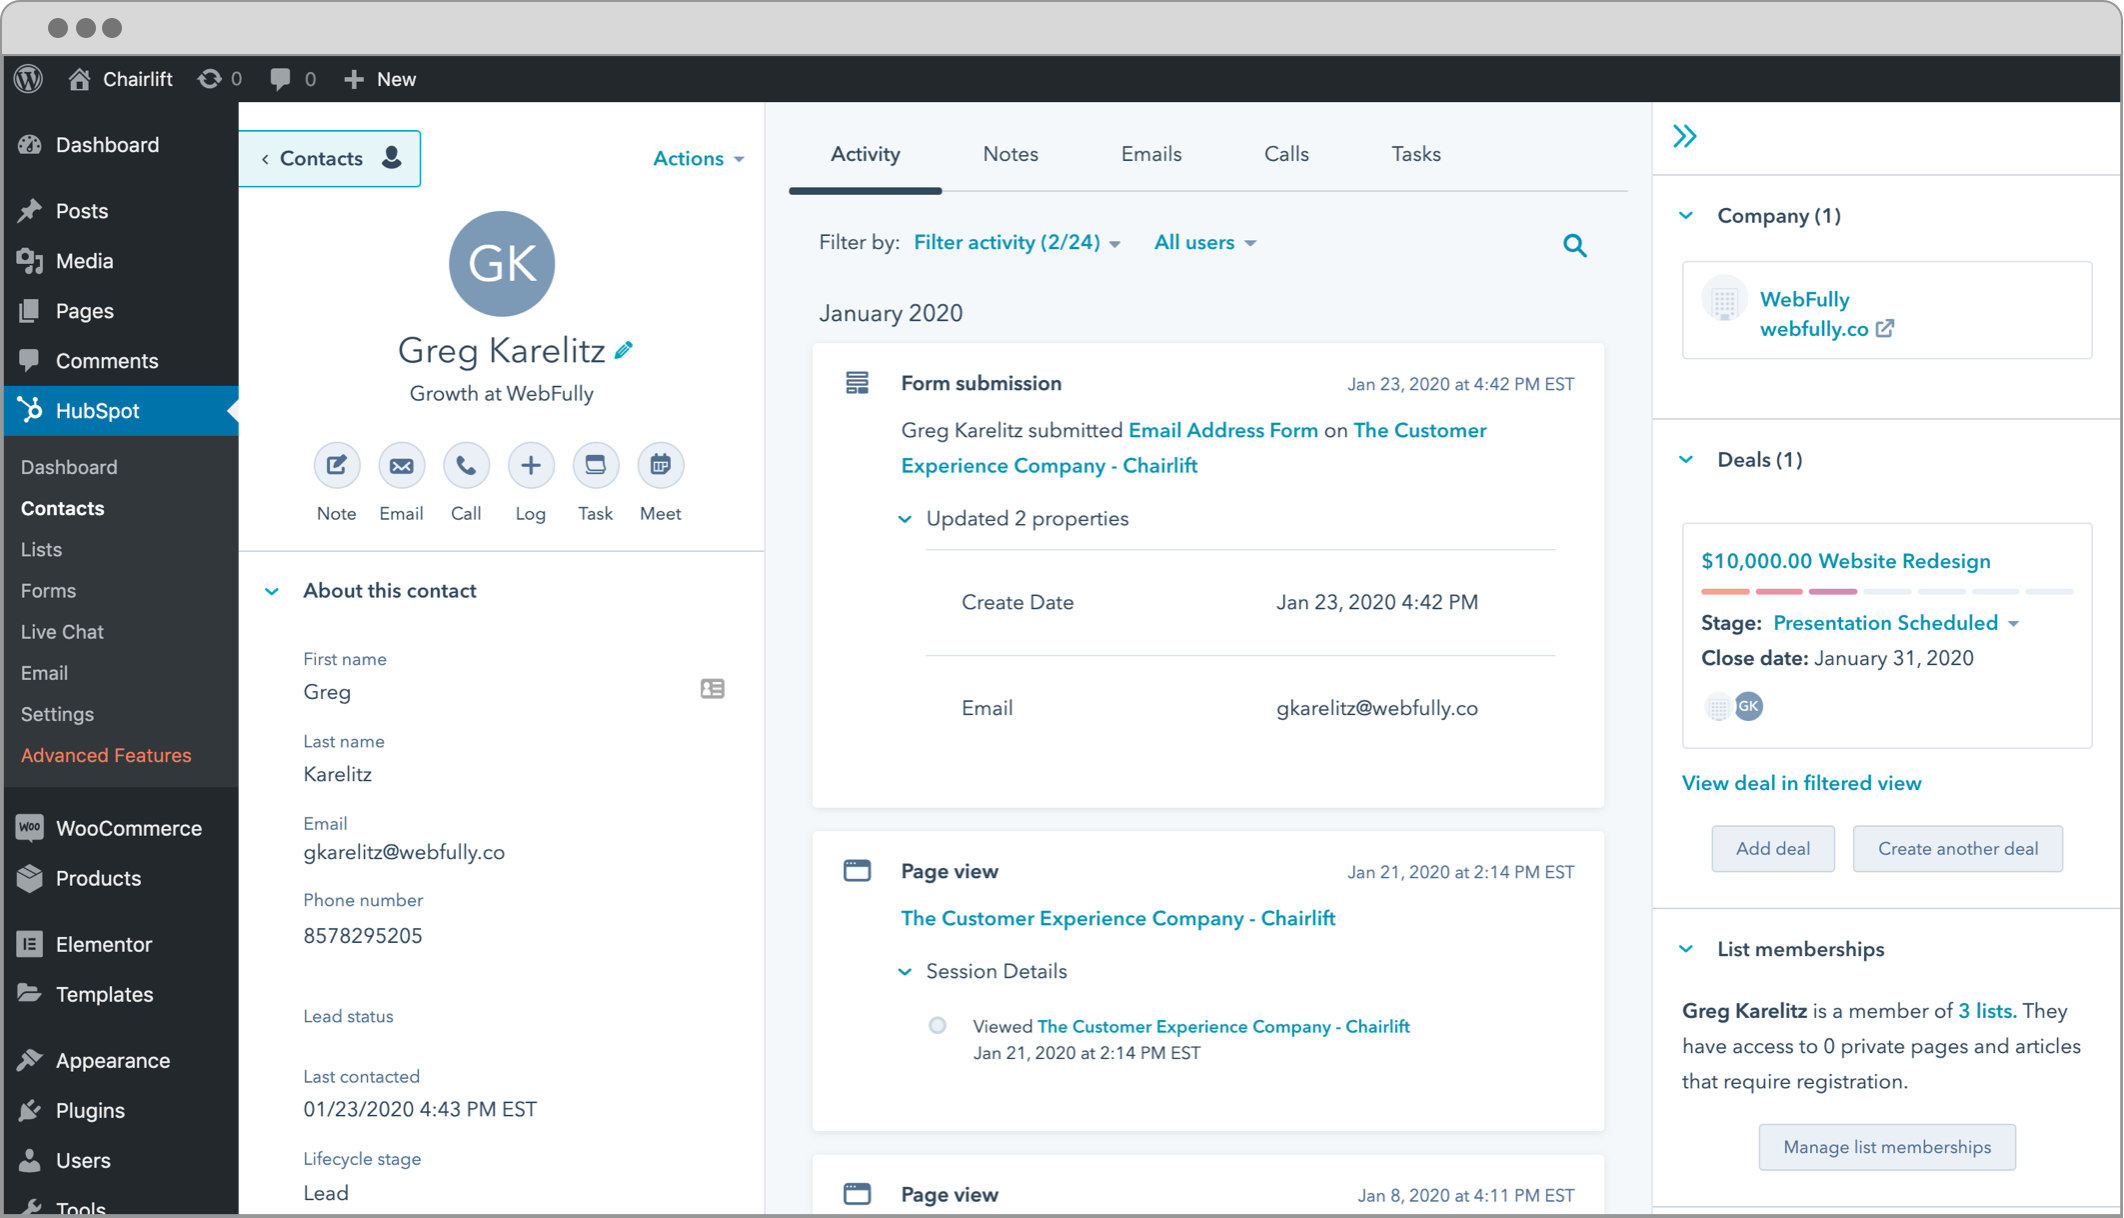 WordPress Plugin: CRM, Forms, Live Chat, Email, & Analytics